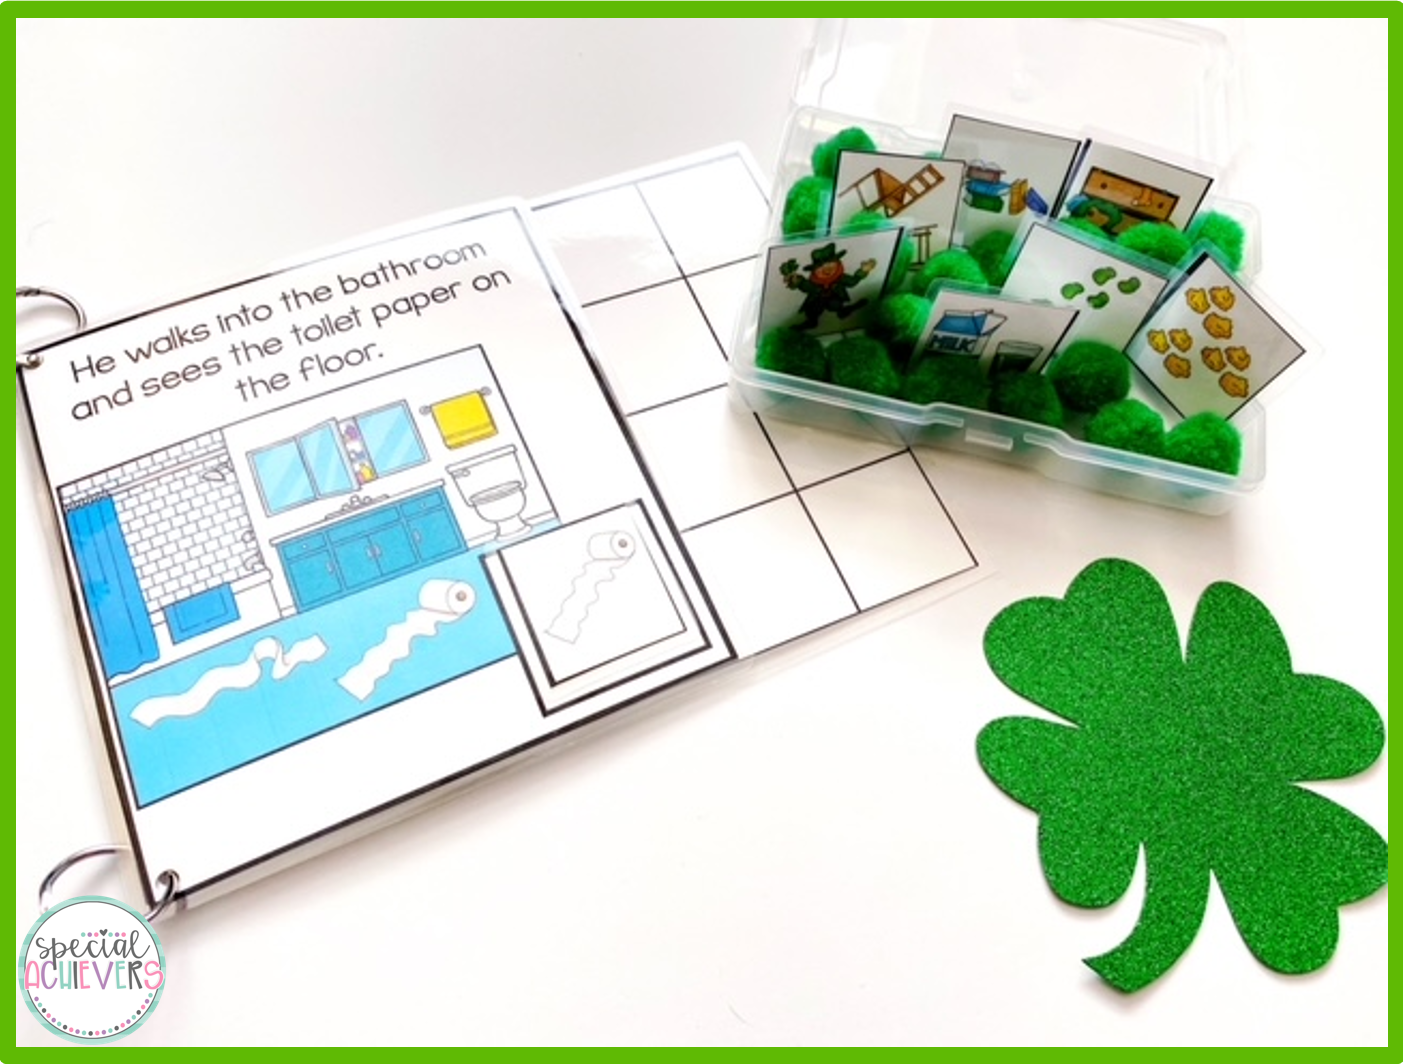 An inside page of the Silly Leprechaun Interactive Book is shown next to a sensory bin holding the interactive pieces for the adapted book.